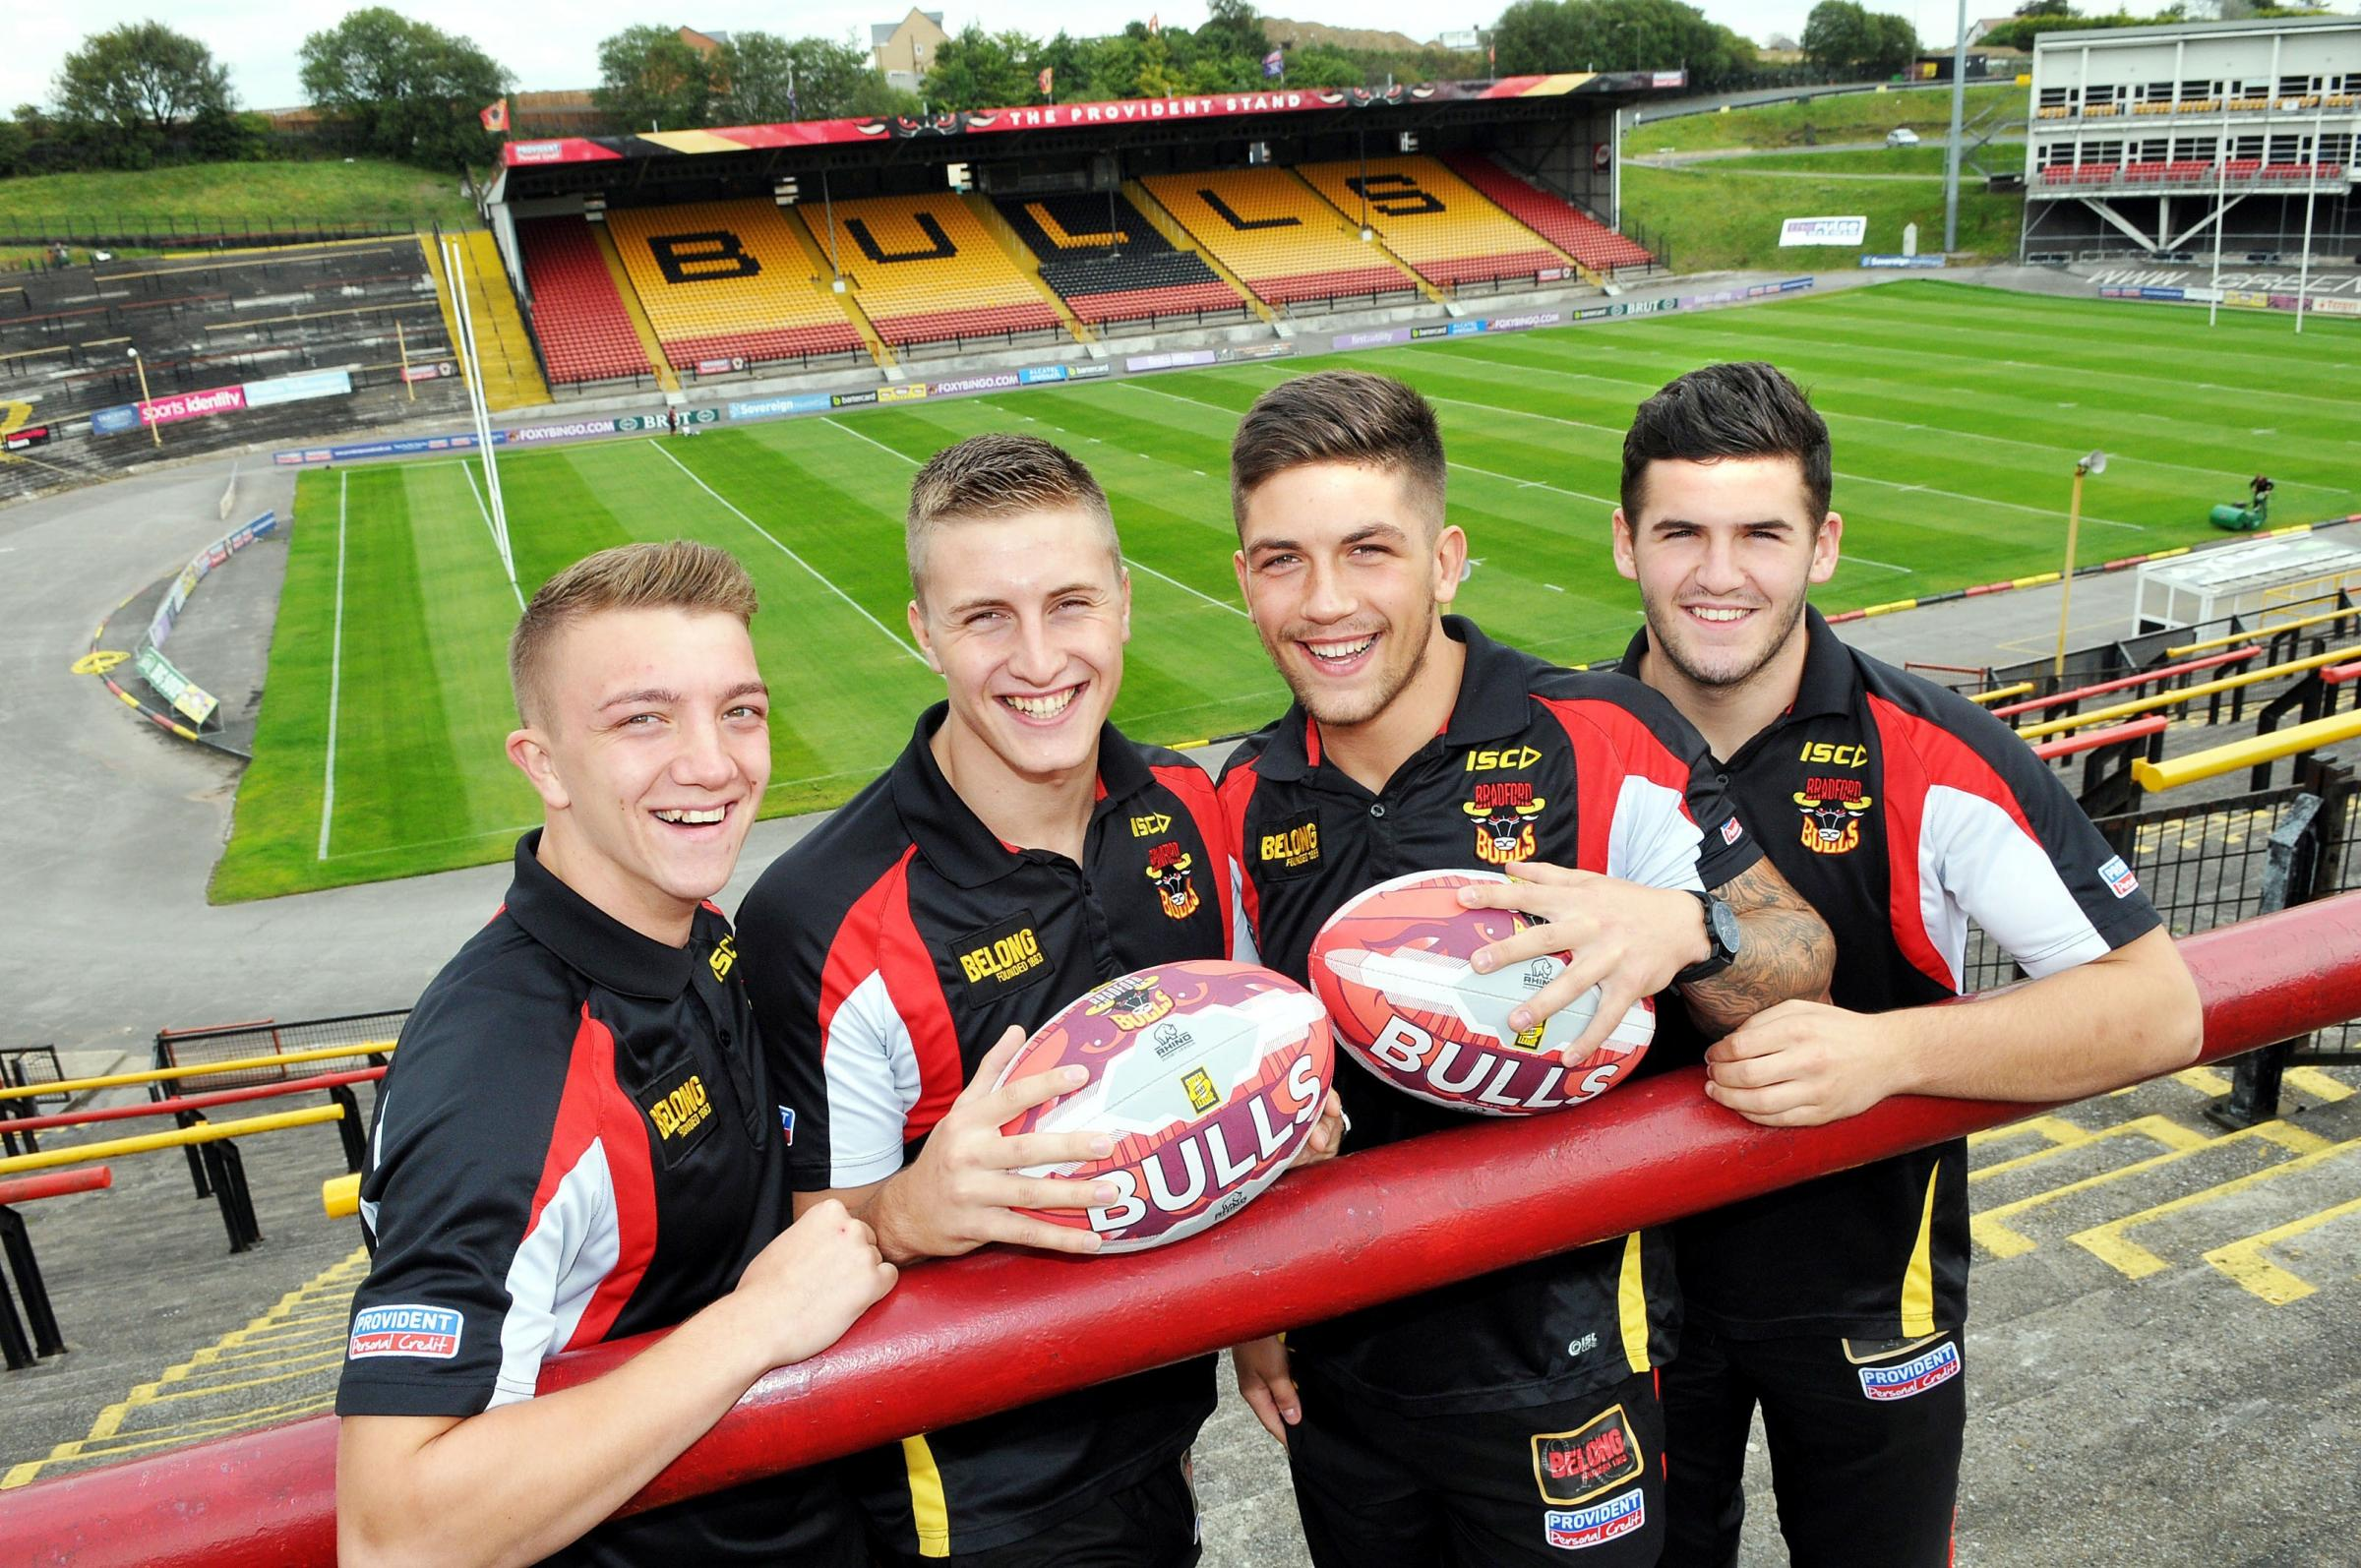 BACK ON BOARD: Bulls youngsters Adam Brook, Alex Mellor, Sam Bates and Nathan Conroy are all smiles